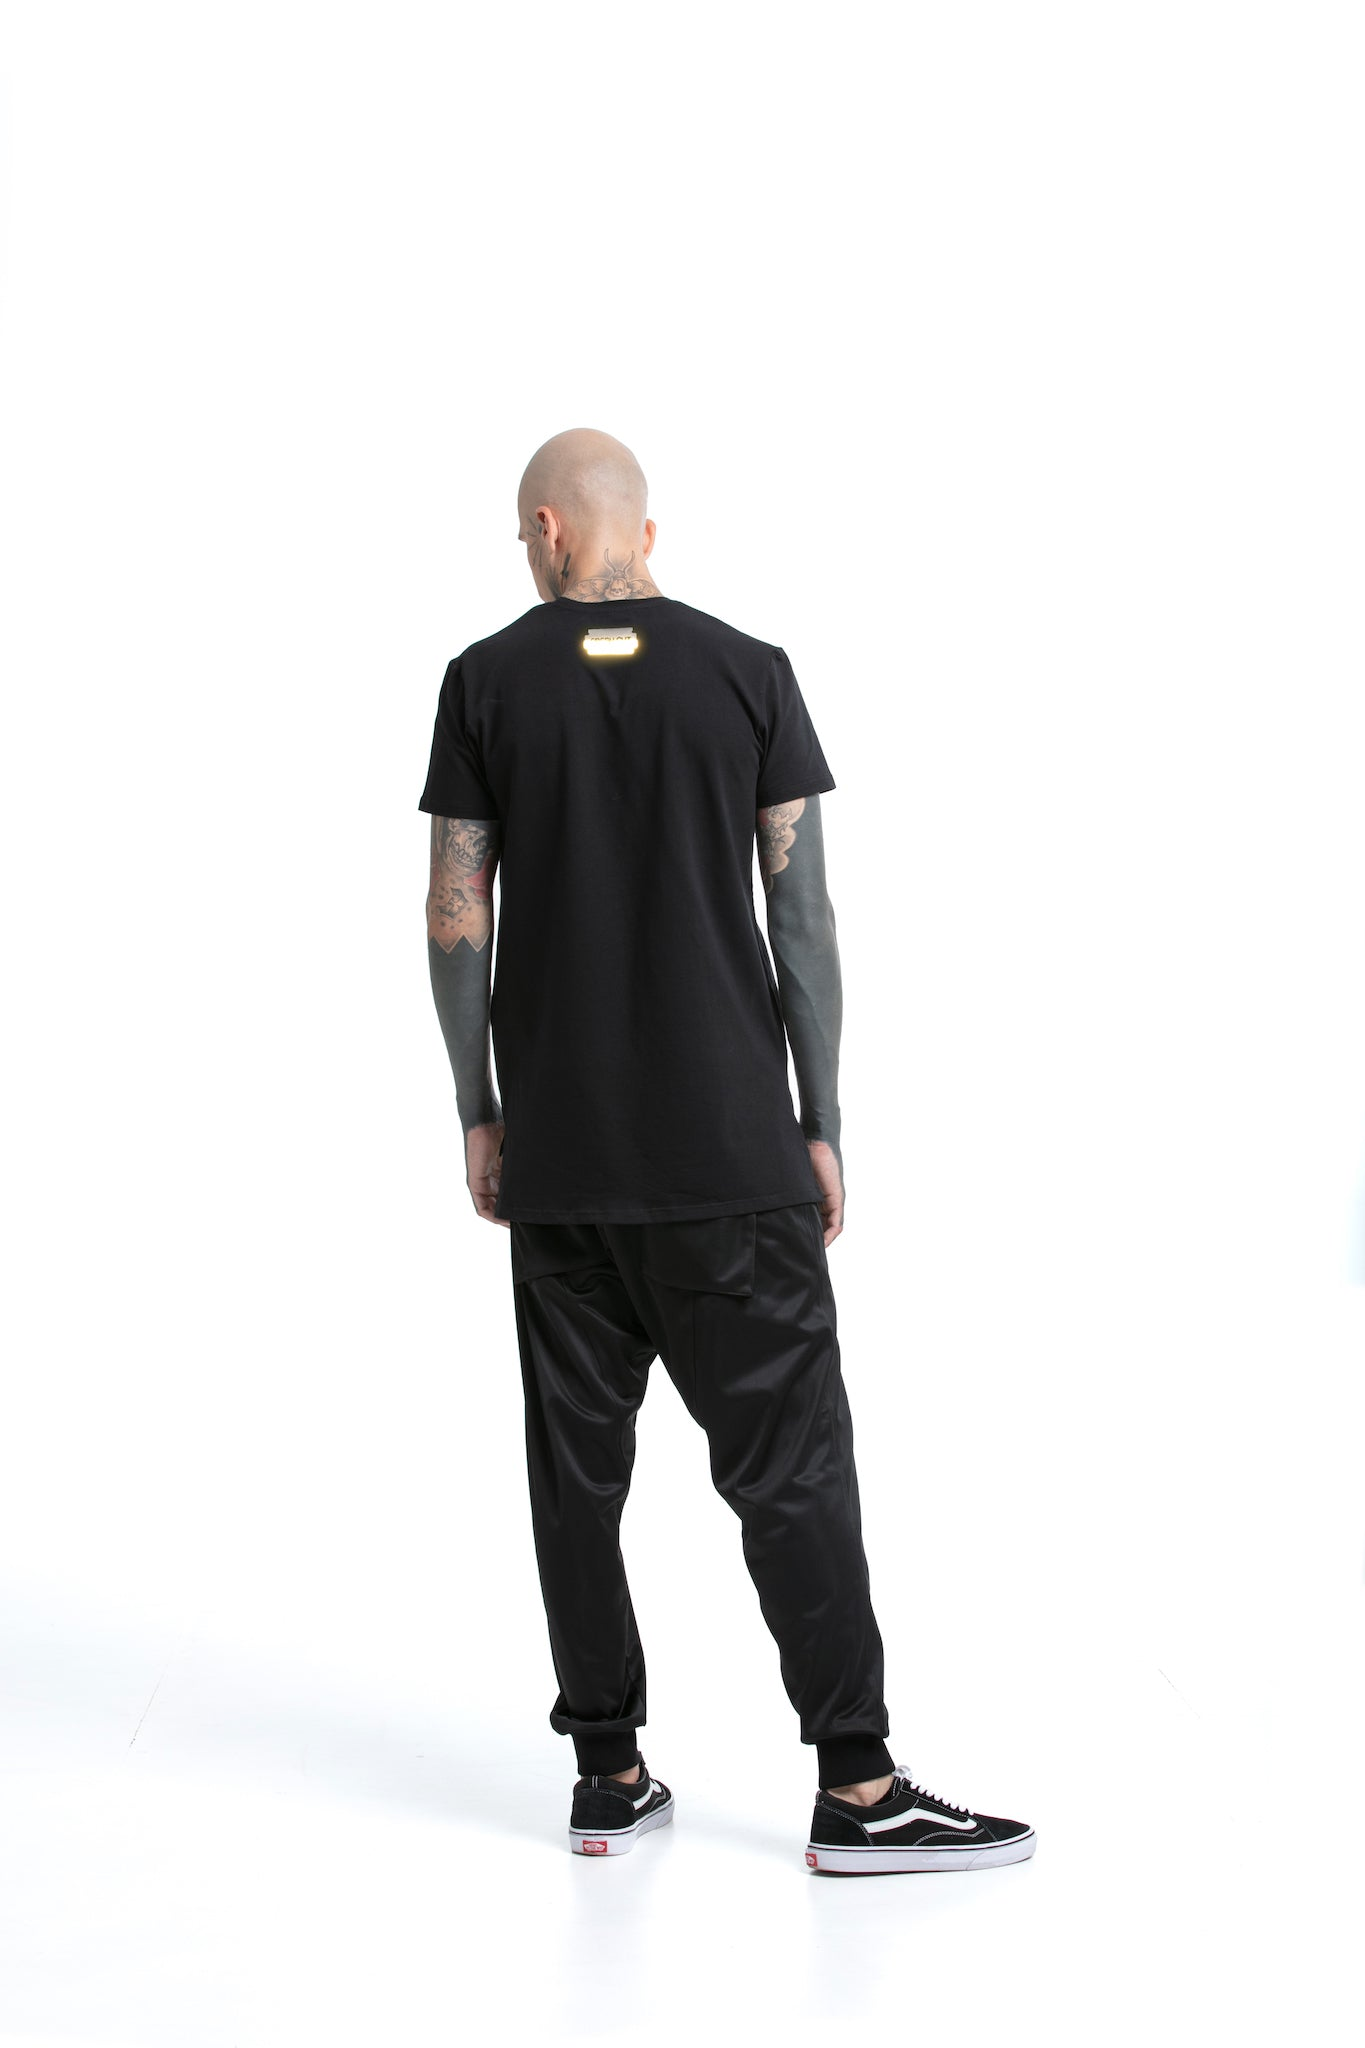 Reflective Techno - regular fit T-shirt with side cuts